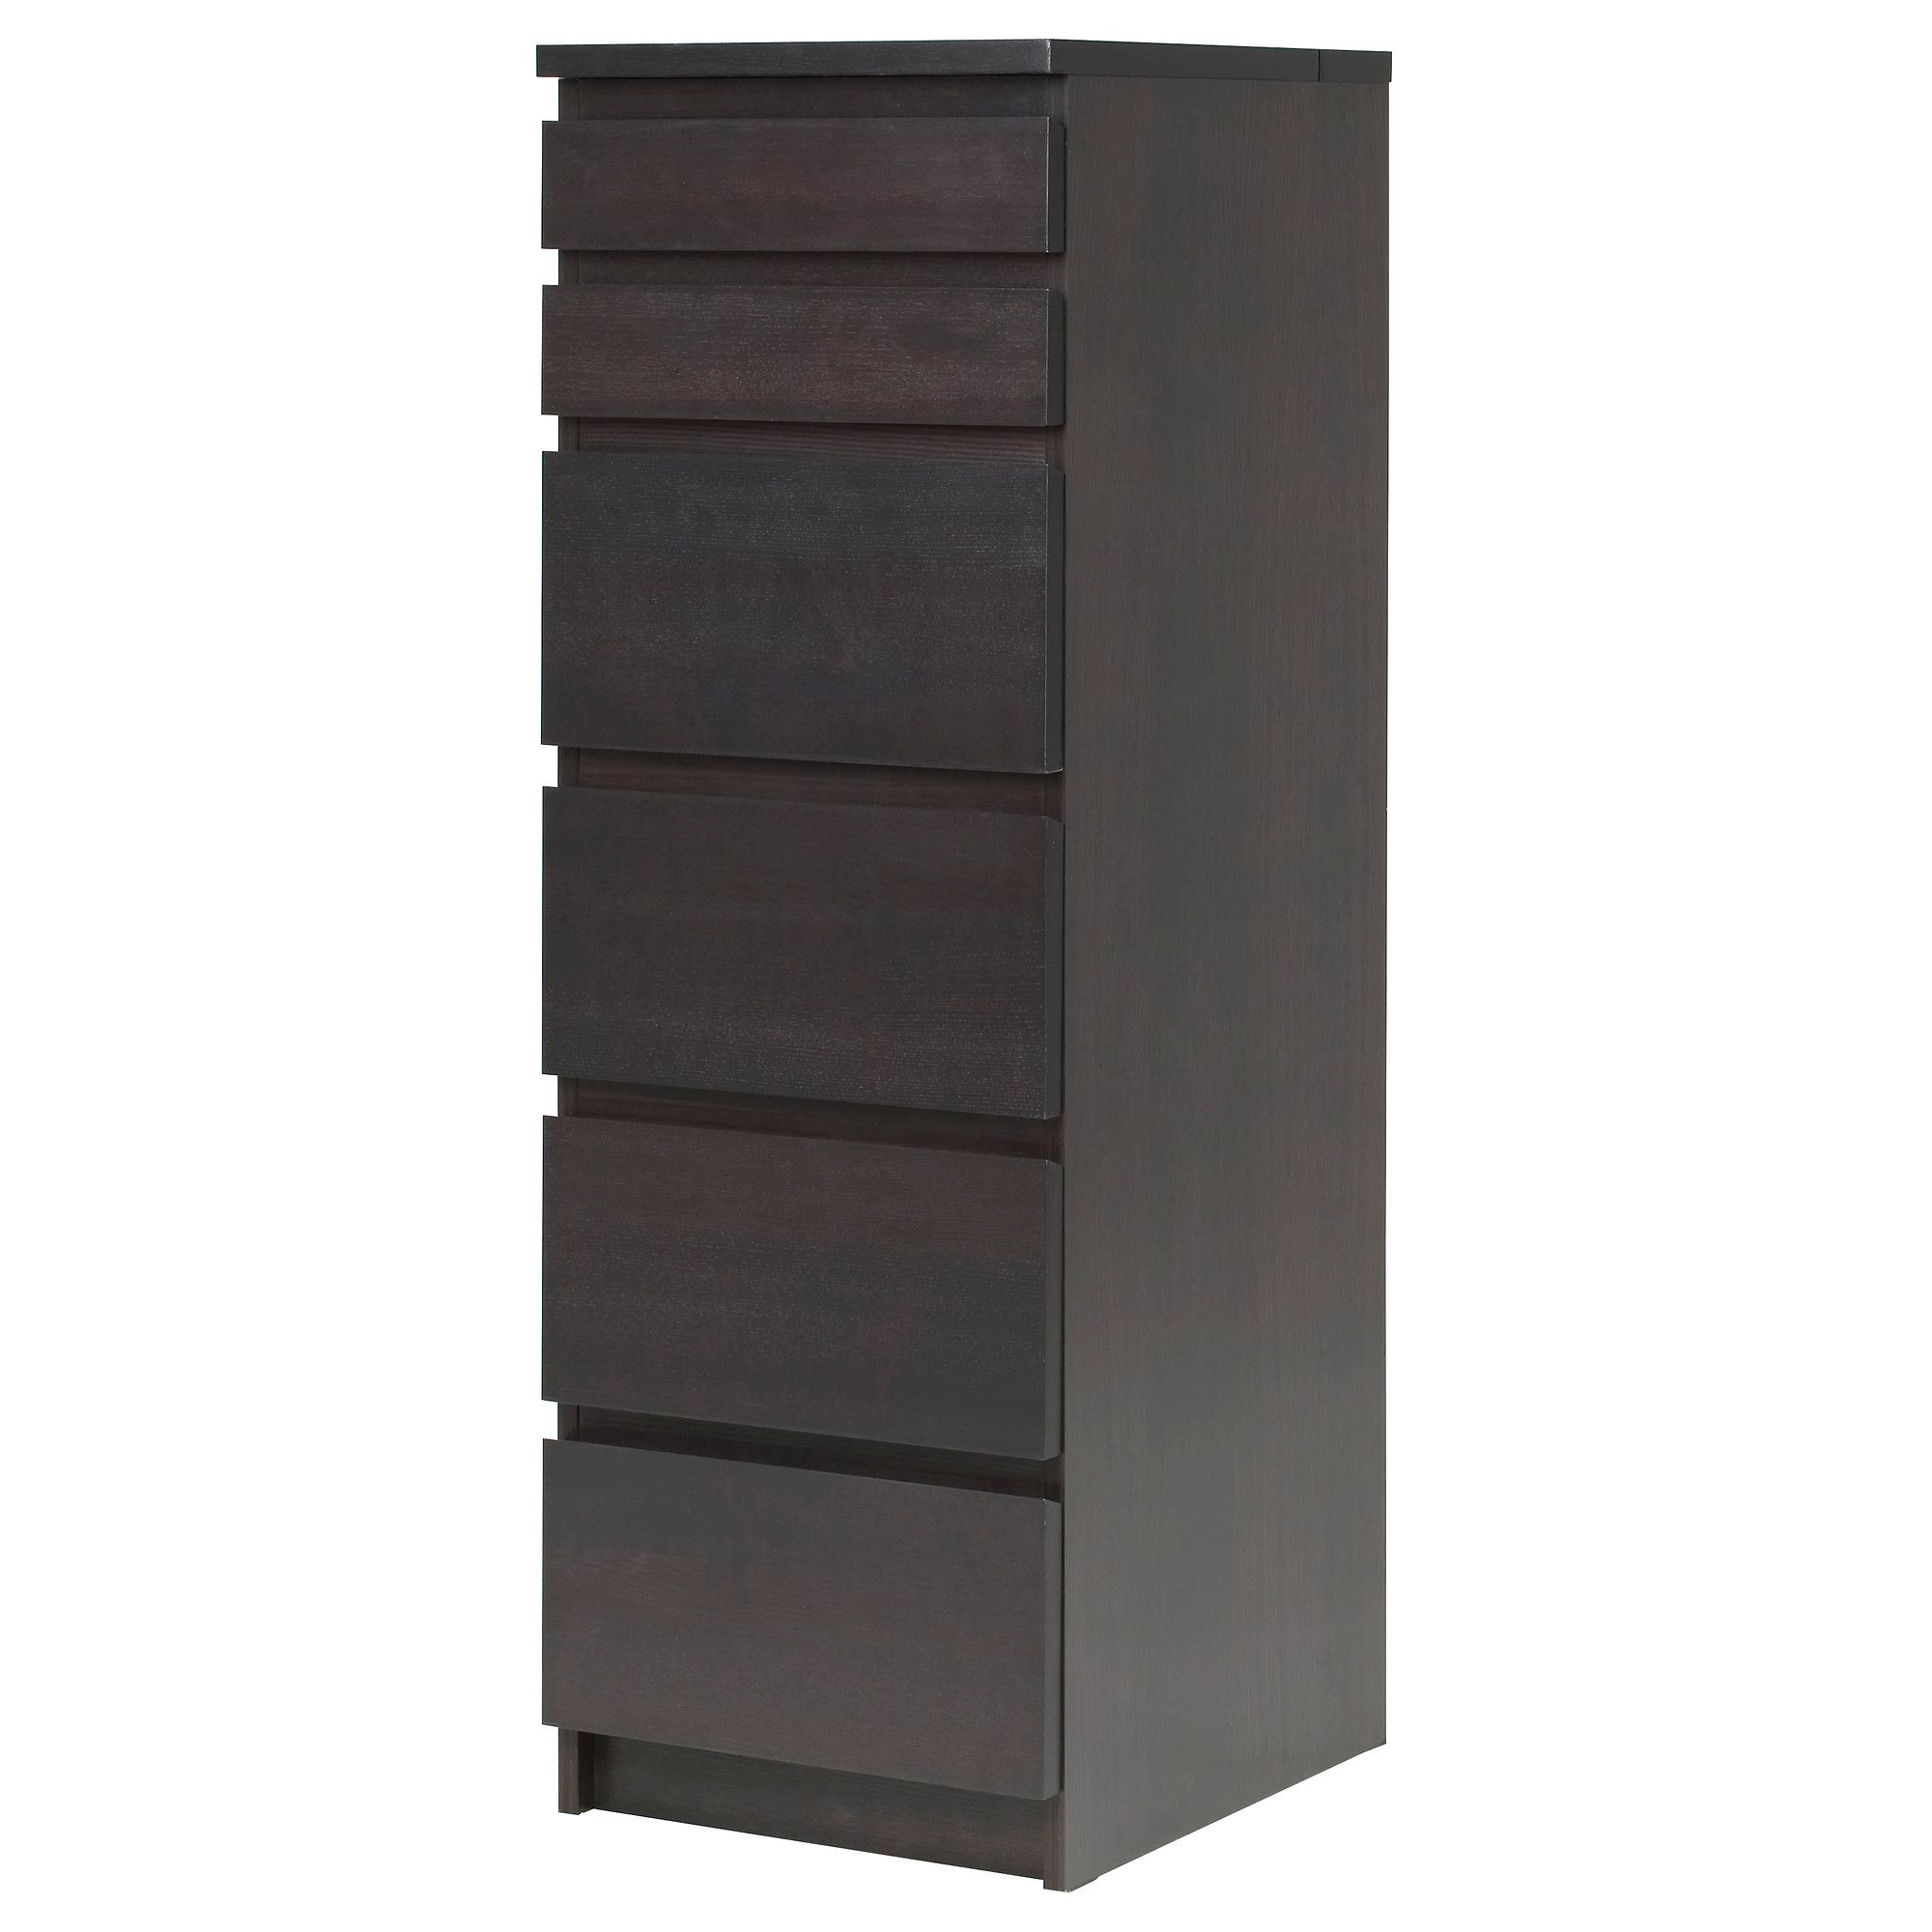 MALM Chest of 6 drawers   black brown mirror glass   IKEA. For bedside chests   MALM Chest of 6 drawers   white stained oak